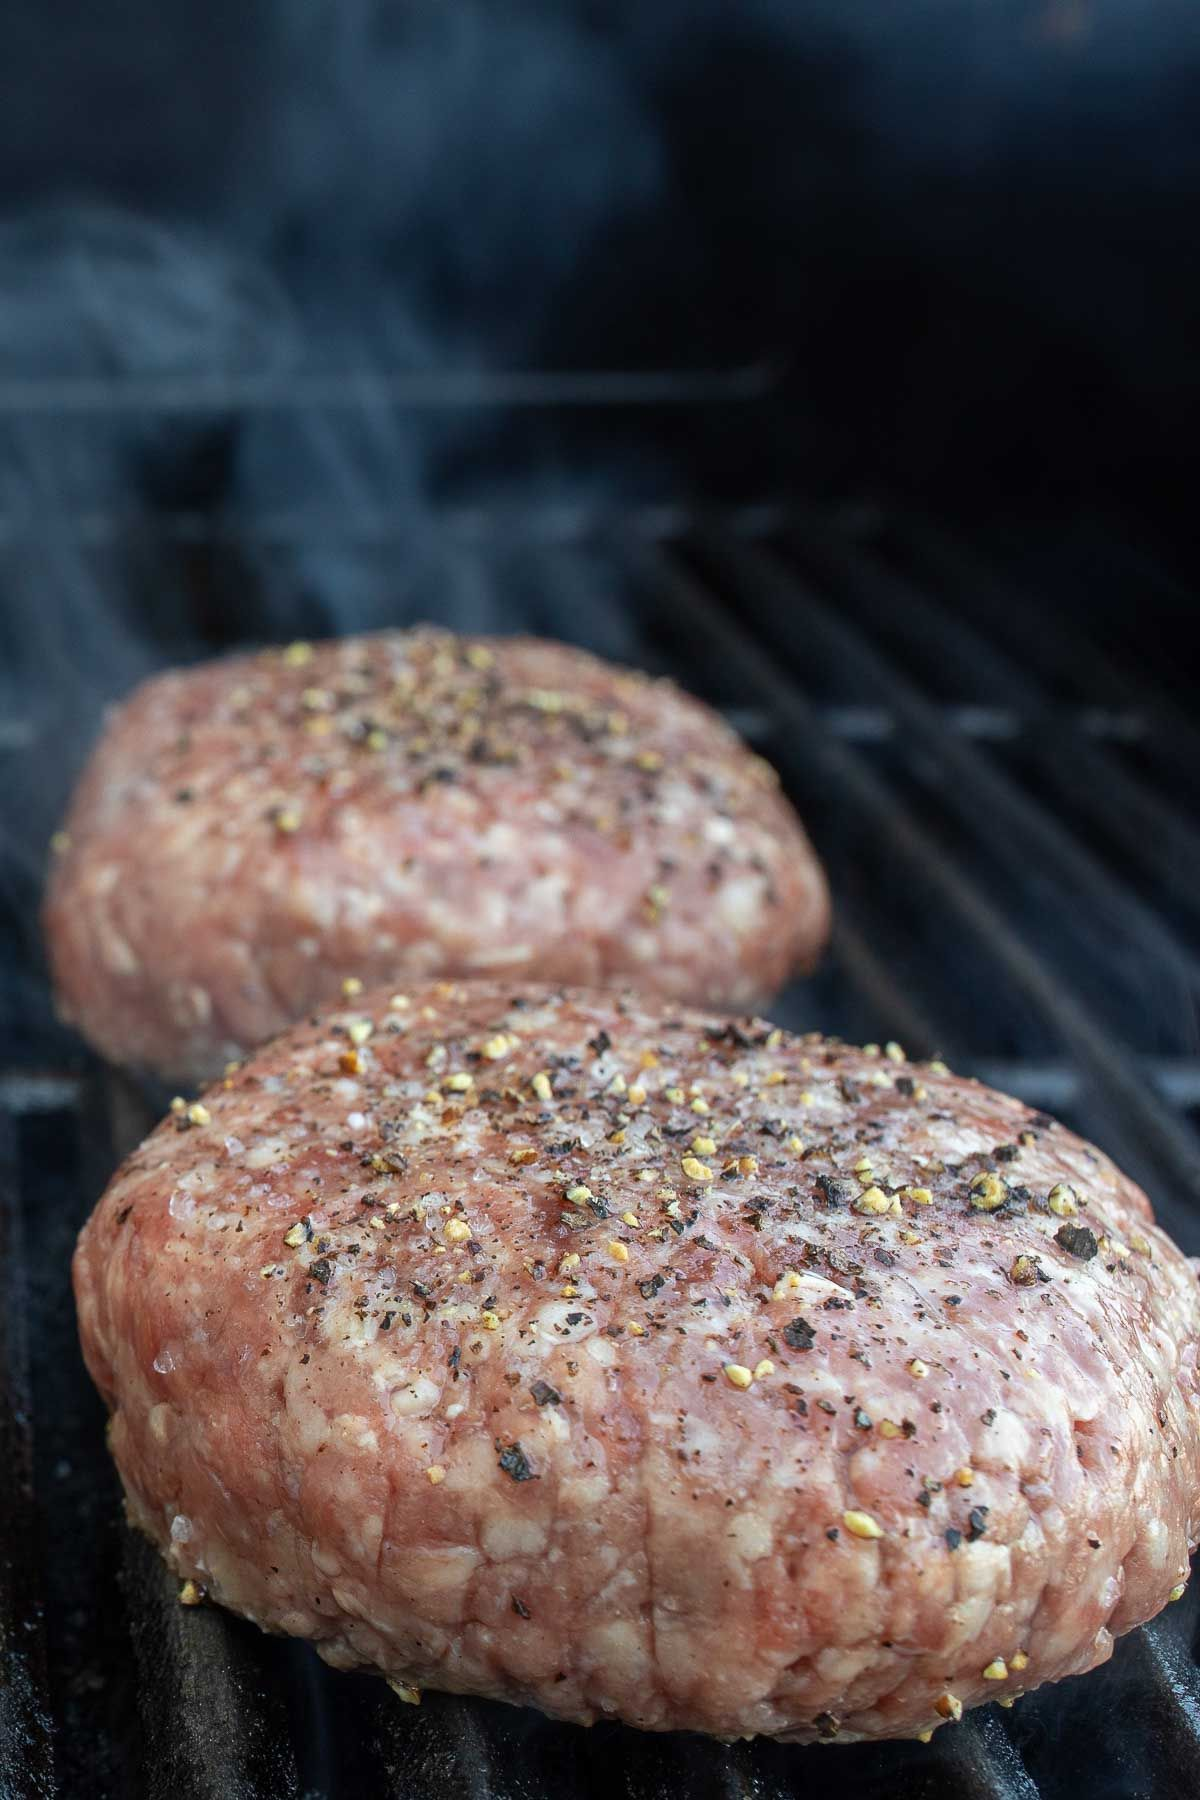 Grilled burgers on a gas grill grate, smoke rising.